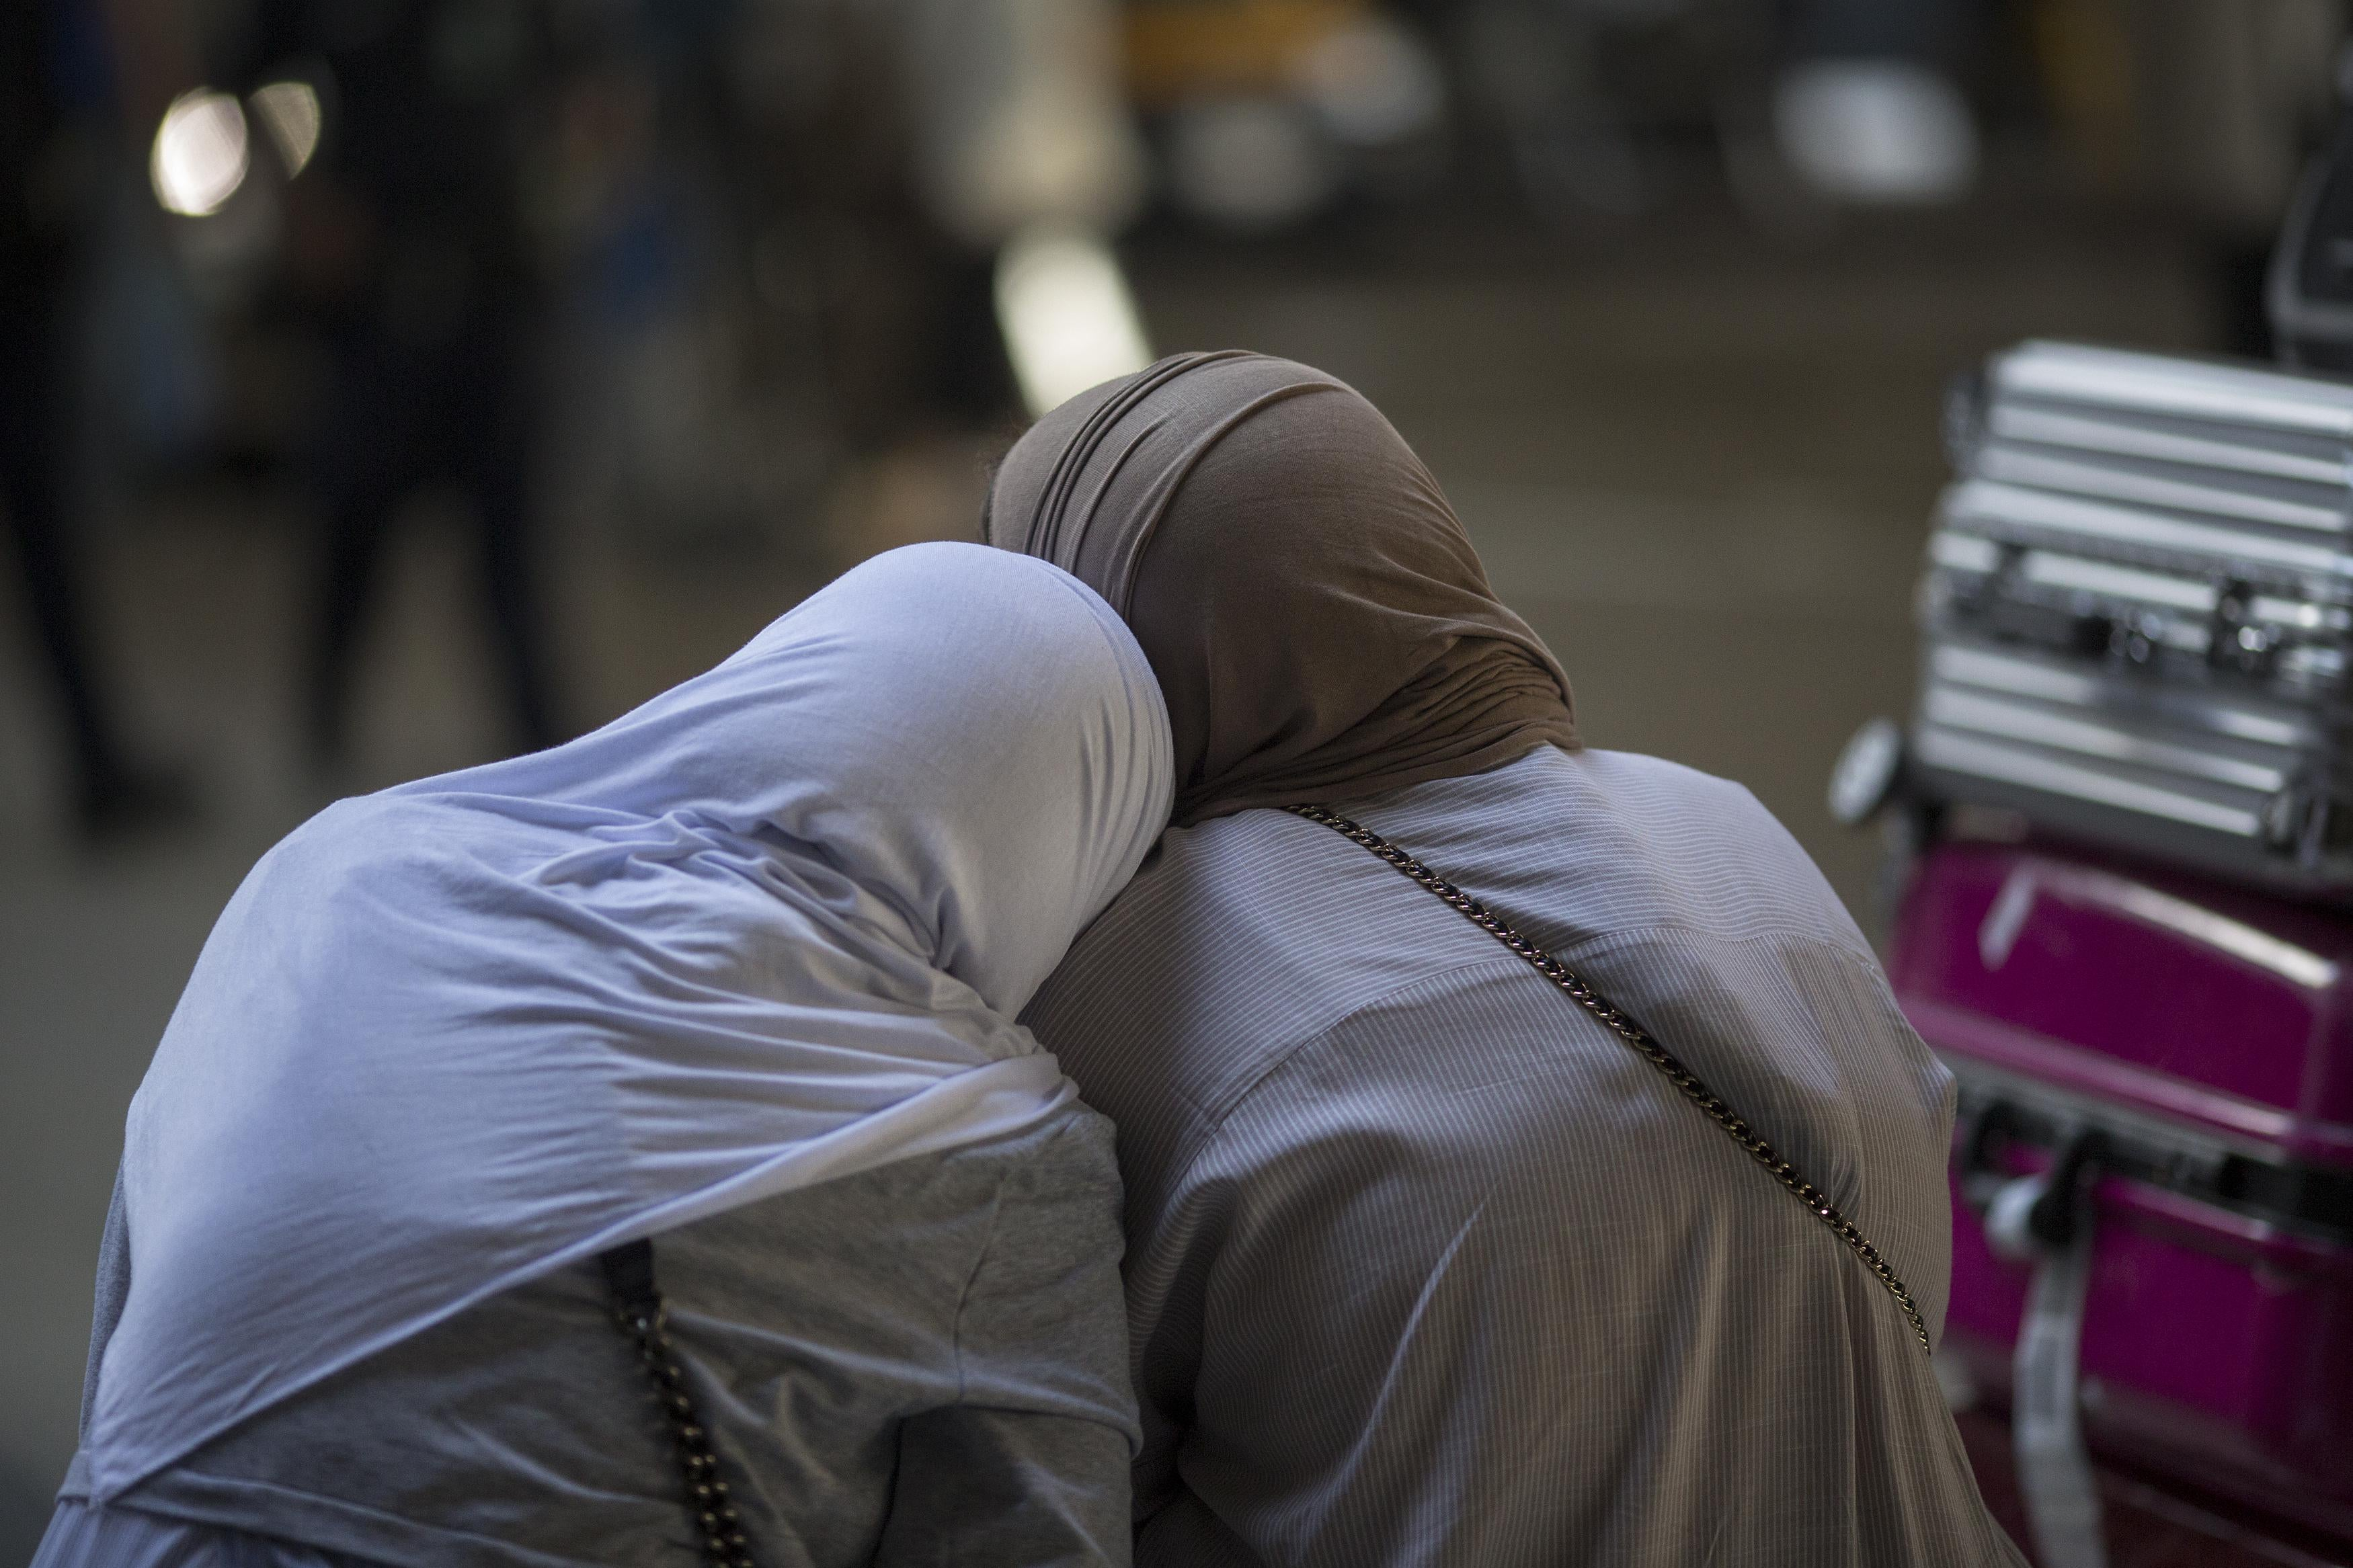 Two Muslim women lean against each other, as seen from behind. Suitcases can be seen next to them.